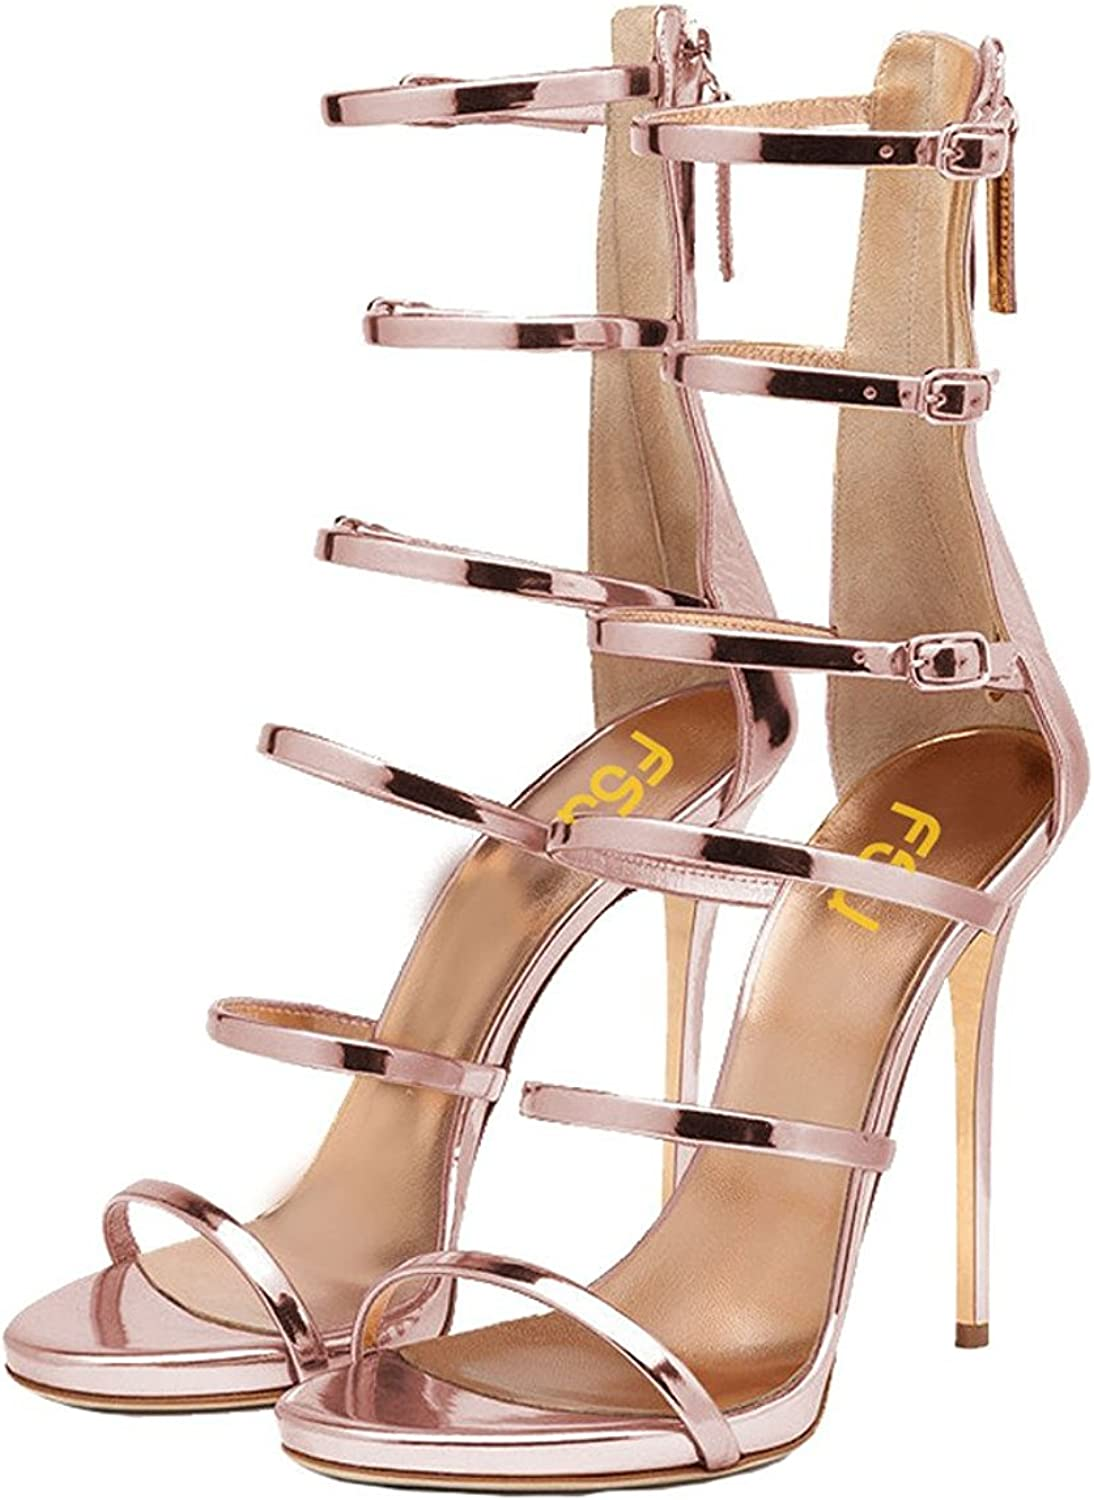 FSJ Women Sexy Strappy Gladiator Wedding Sandals High Heel Stiletto shoes for Summer Size 4-15 US